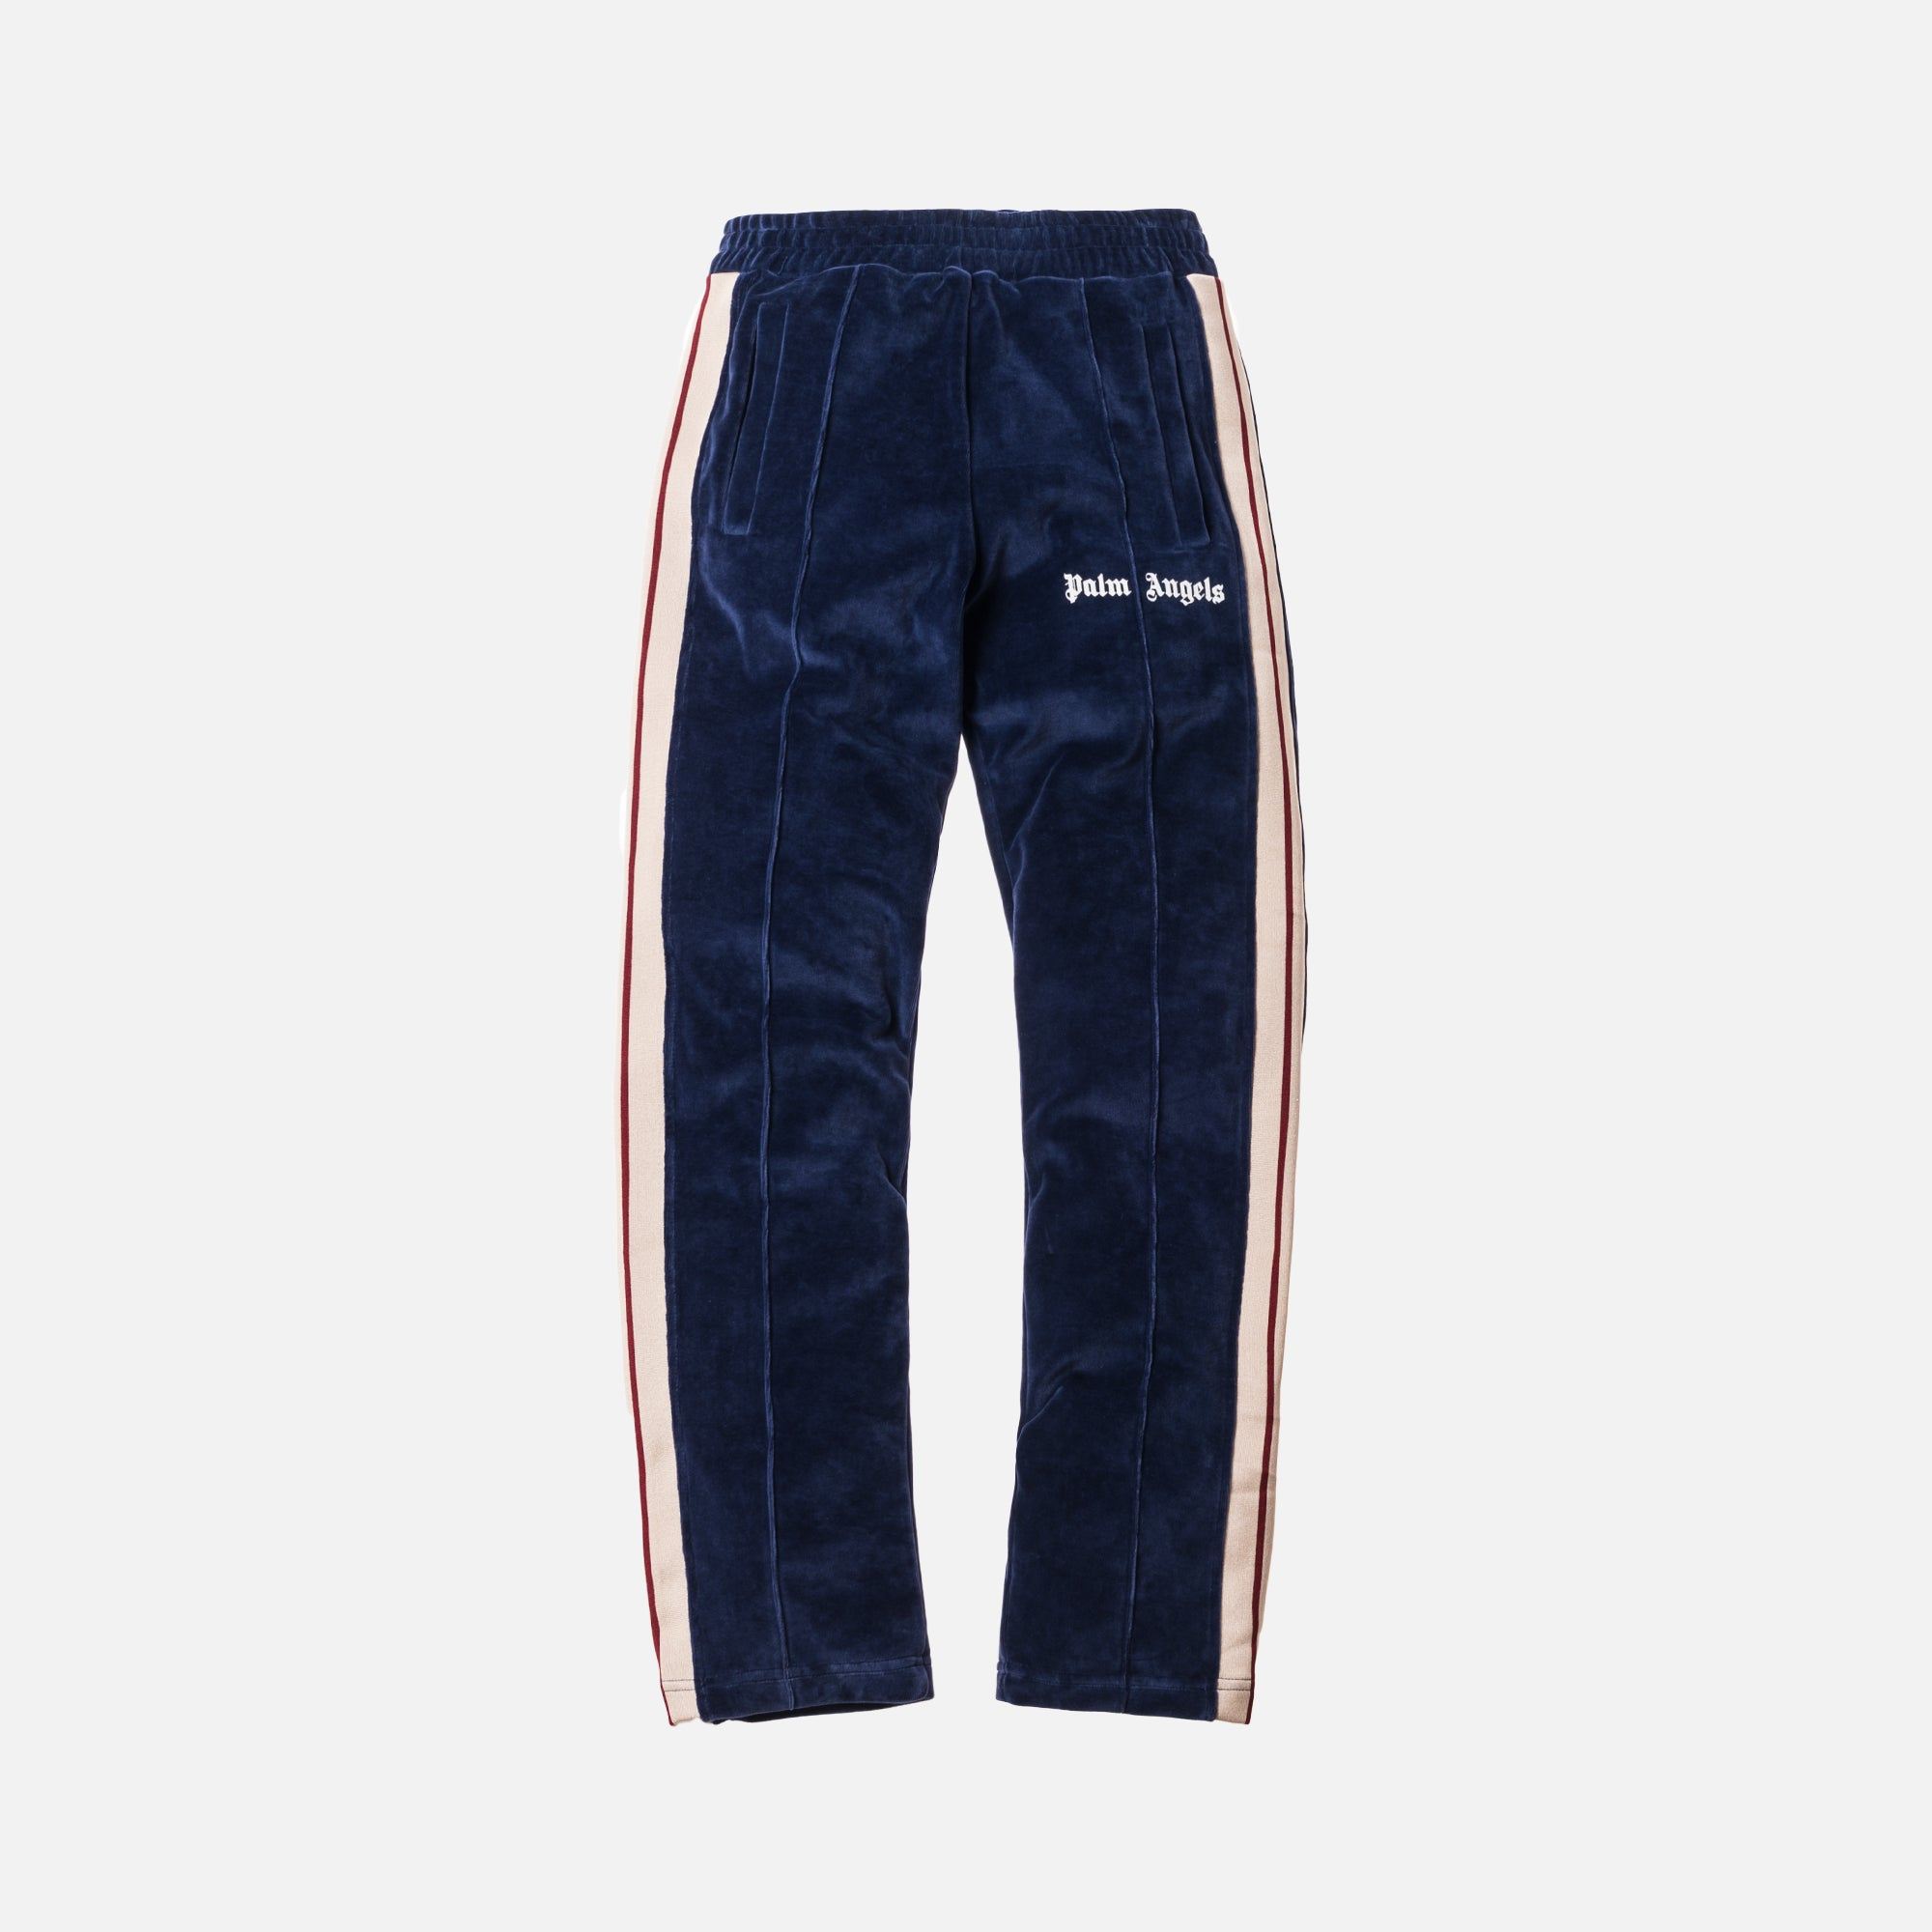 Palm Angels Chenille Track Pants - Navy Blue / White